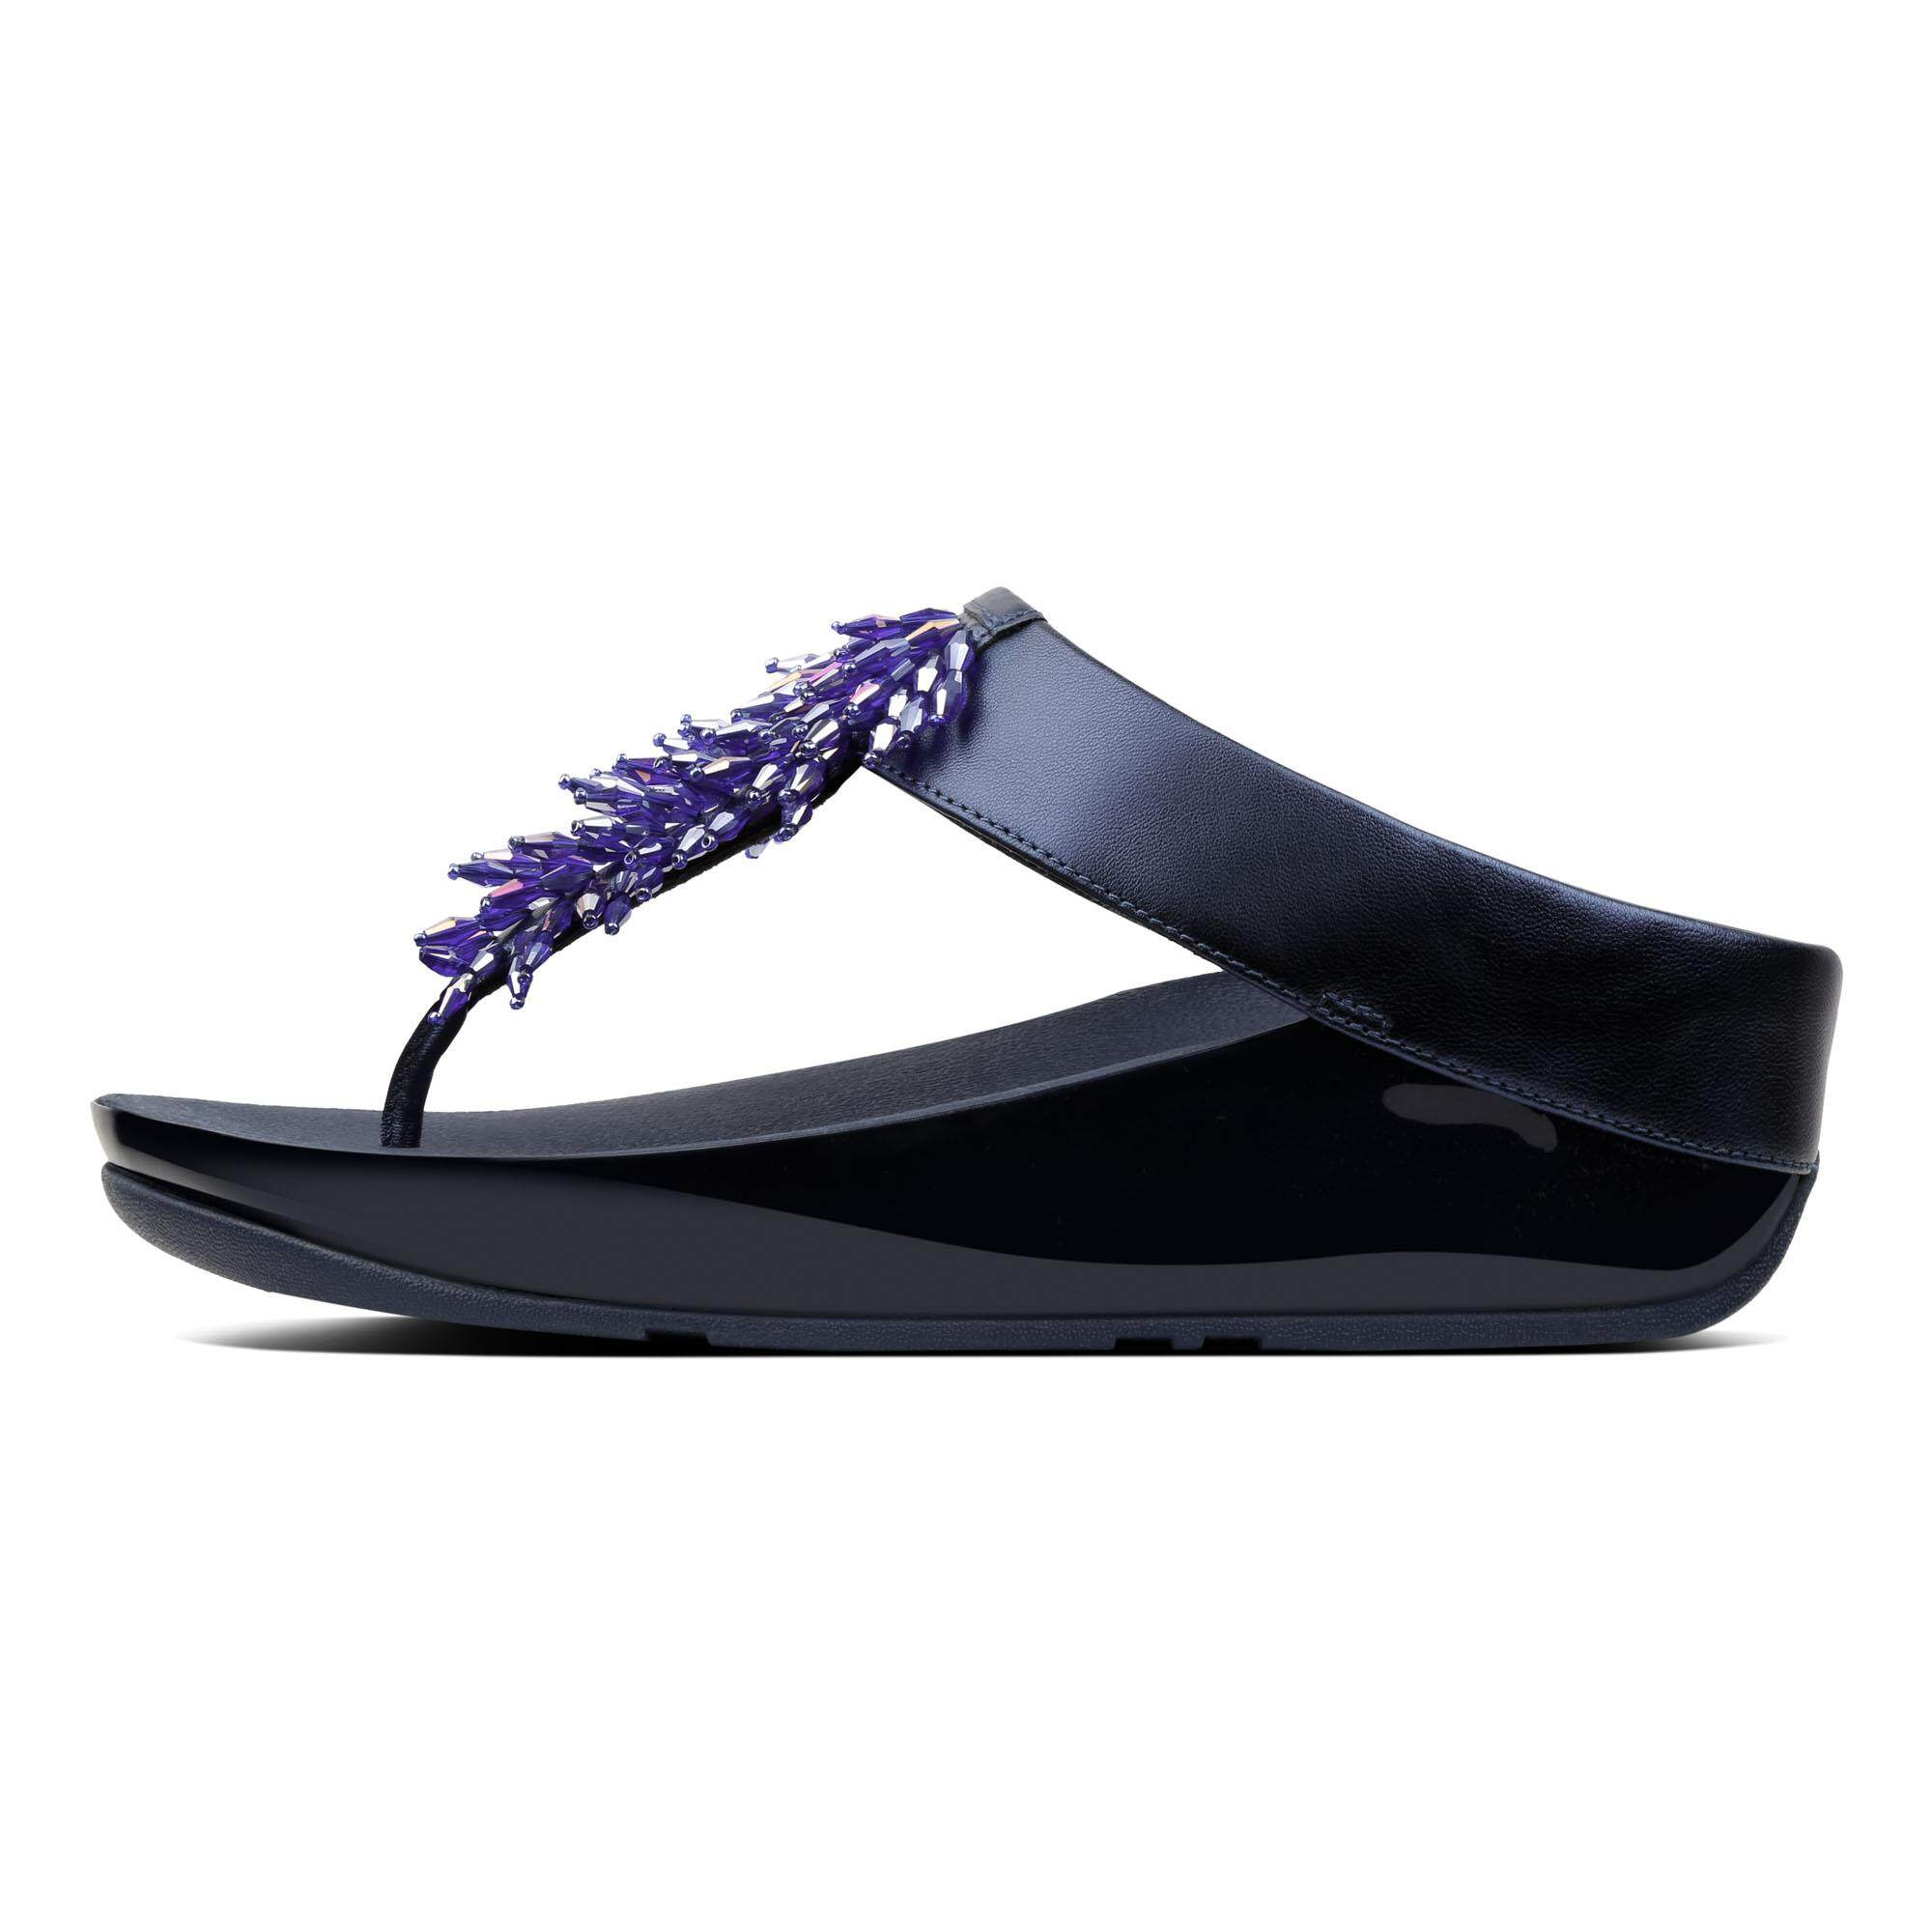 50d500022 FitFlop Women s Shoes price in Malaysia - Best FitFlop Women s Shoes ...